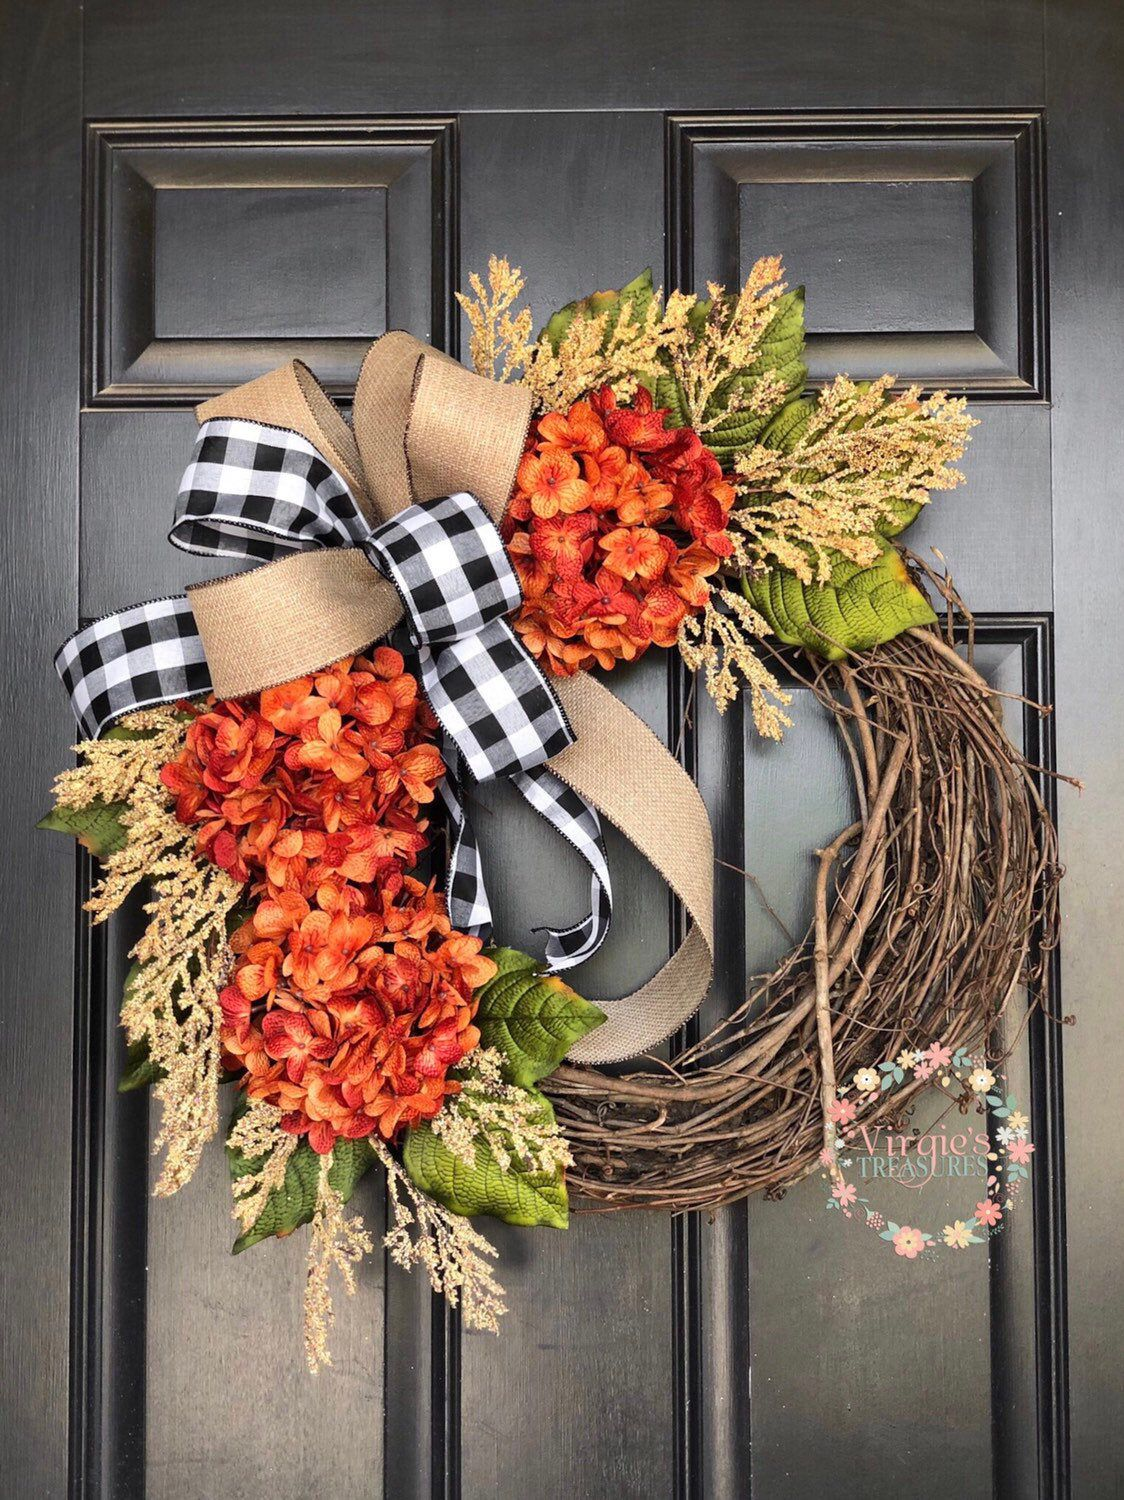 Excited To Share This Item From My Etsy Shop Fall Hydrangea Wreath Hydrangea Wreath Fall Wreath Front Doo In 2020 Fall Hydrangea Wreath Fall Wreath Fall Hydrangea